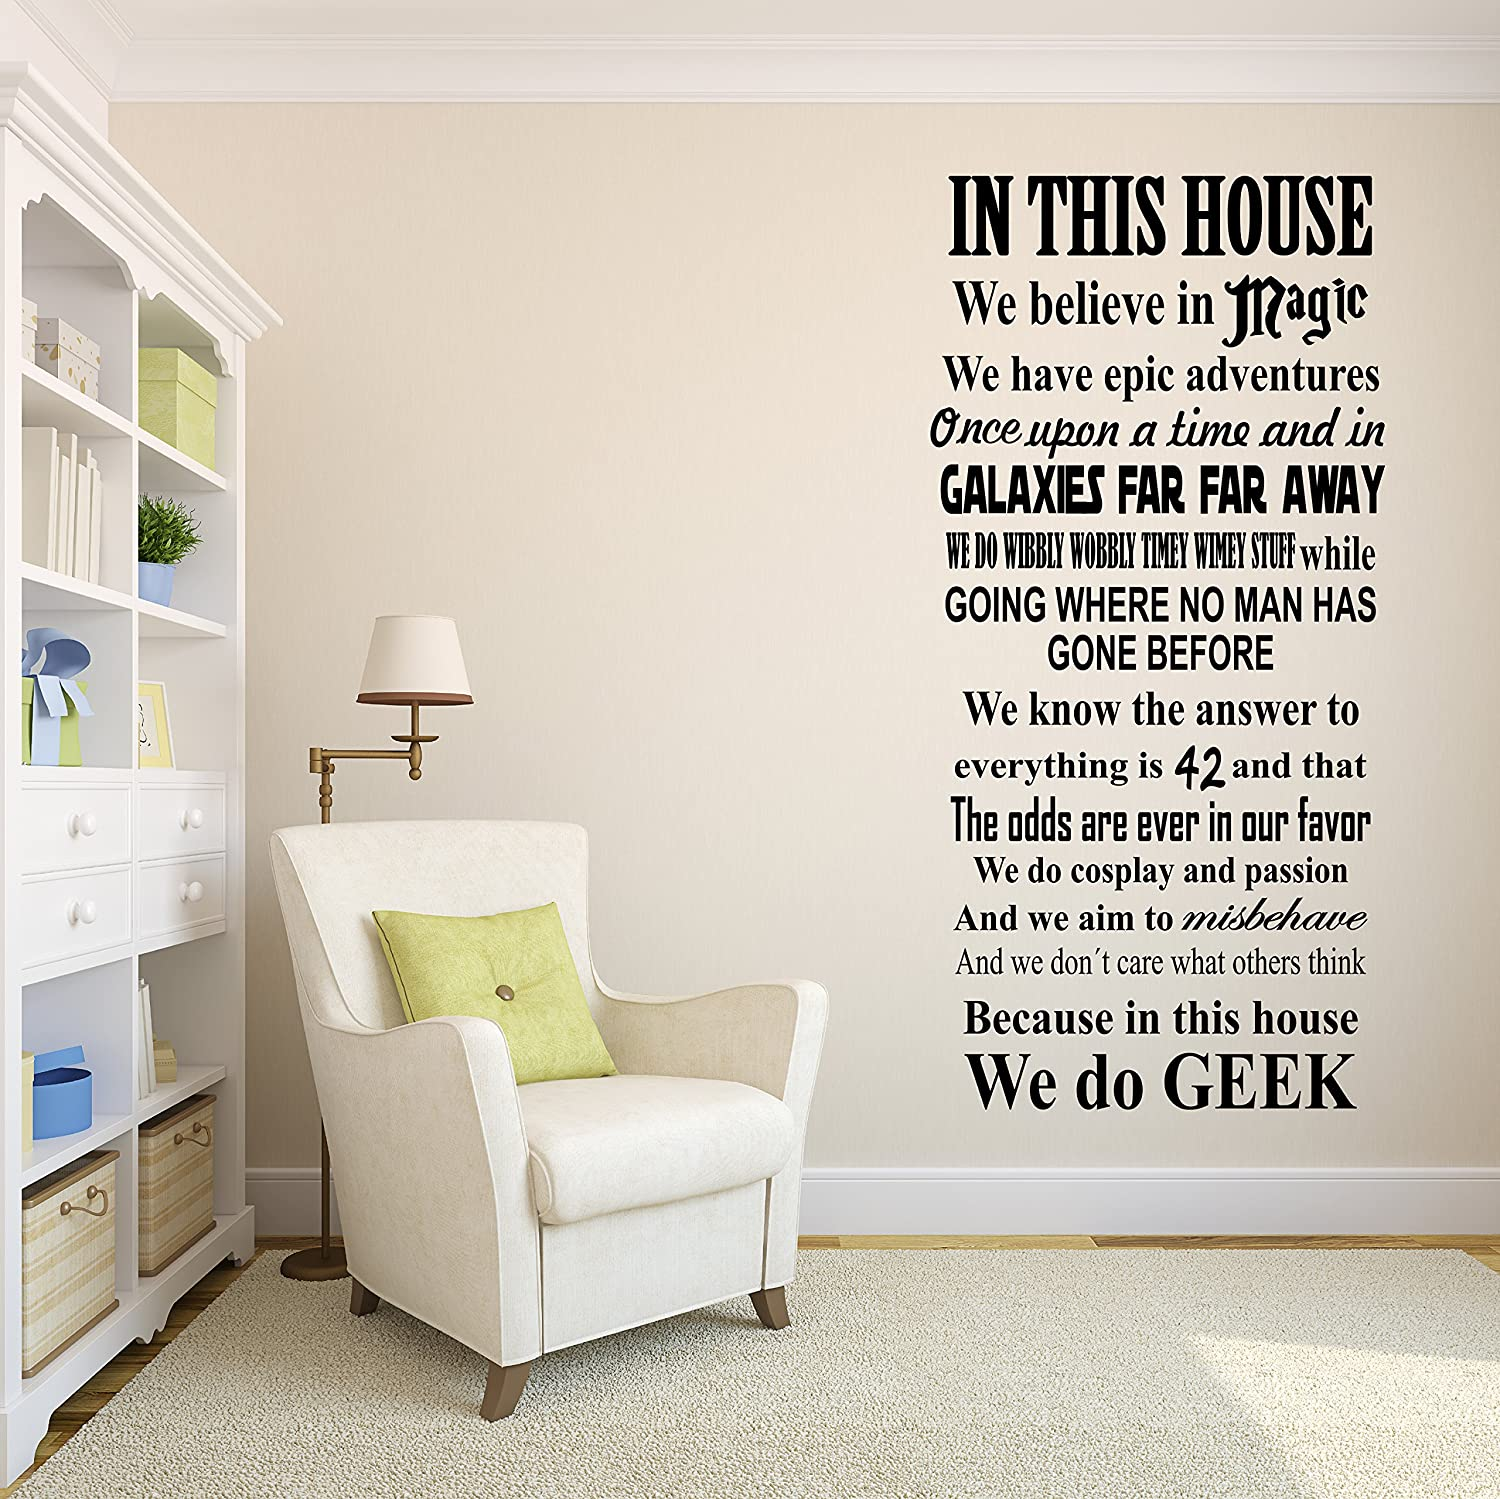 Amazon.com: In This House We Do Geek Wall Decal - Living Room Decor ...